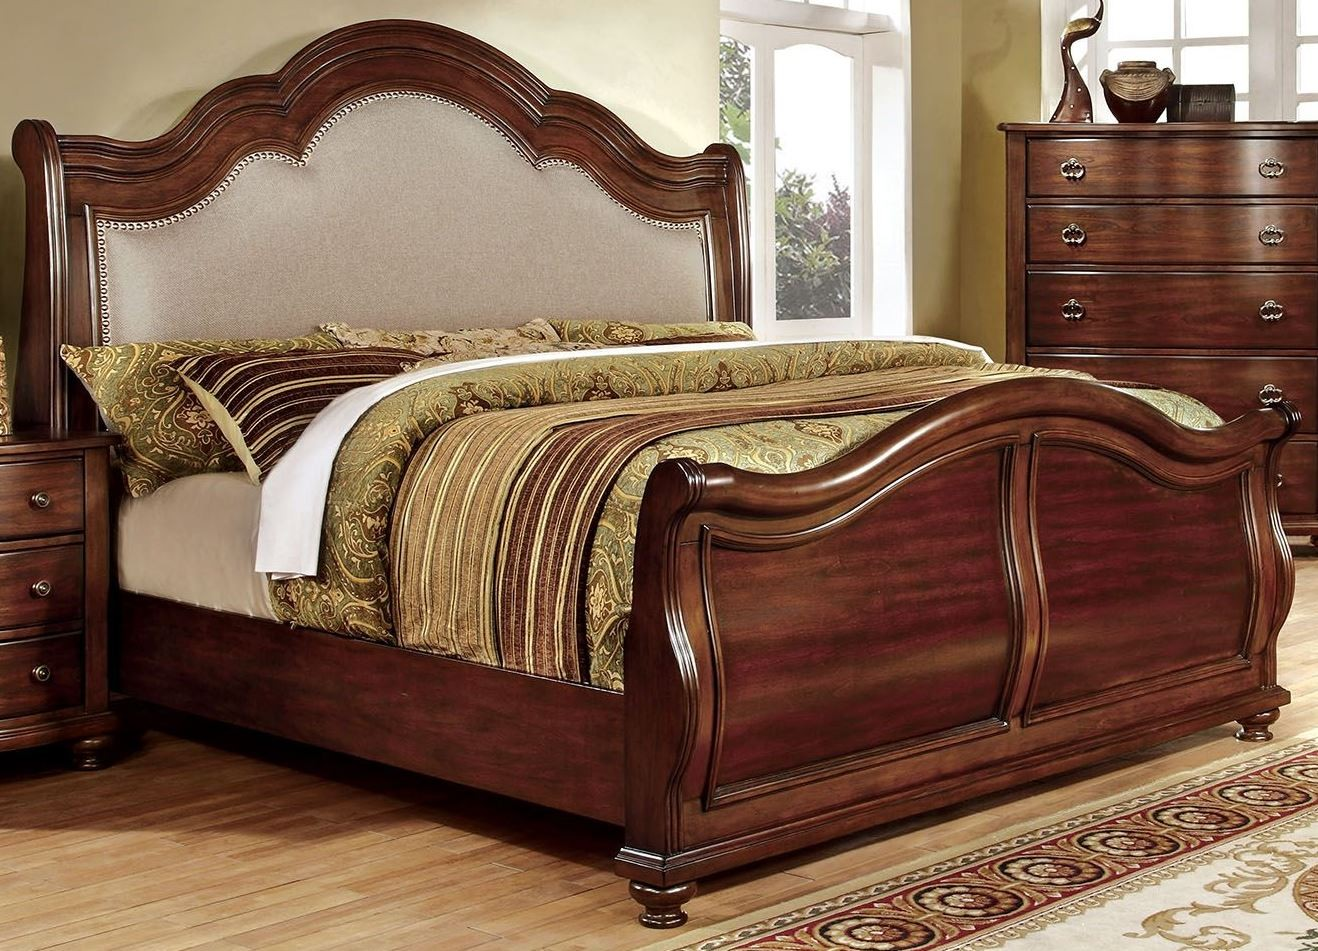 Bellavista Brown Cherry Queen Sleigh Bed From Furniture Of